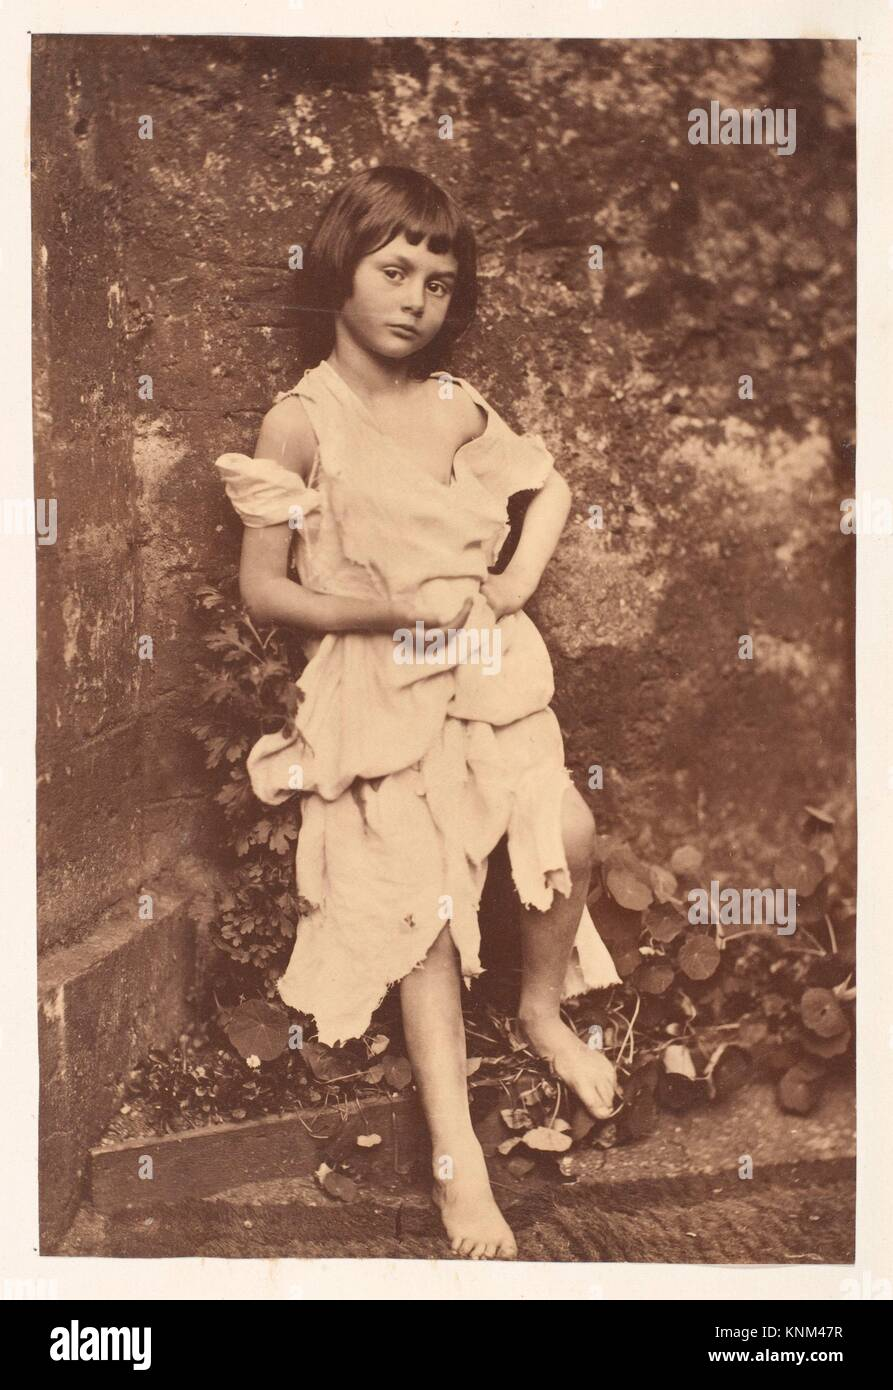 Alice Liddell as The Beggar Maid. Artist: Lewis Carroll (British, Daresbury, Cheshire 1832-1898 Guildford); Subject: - Stock Image